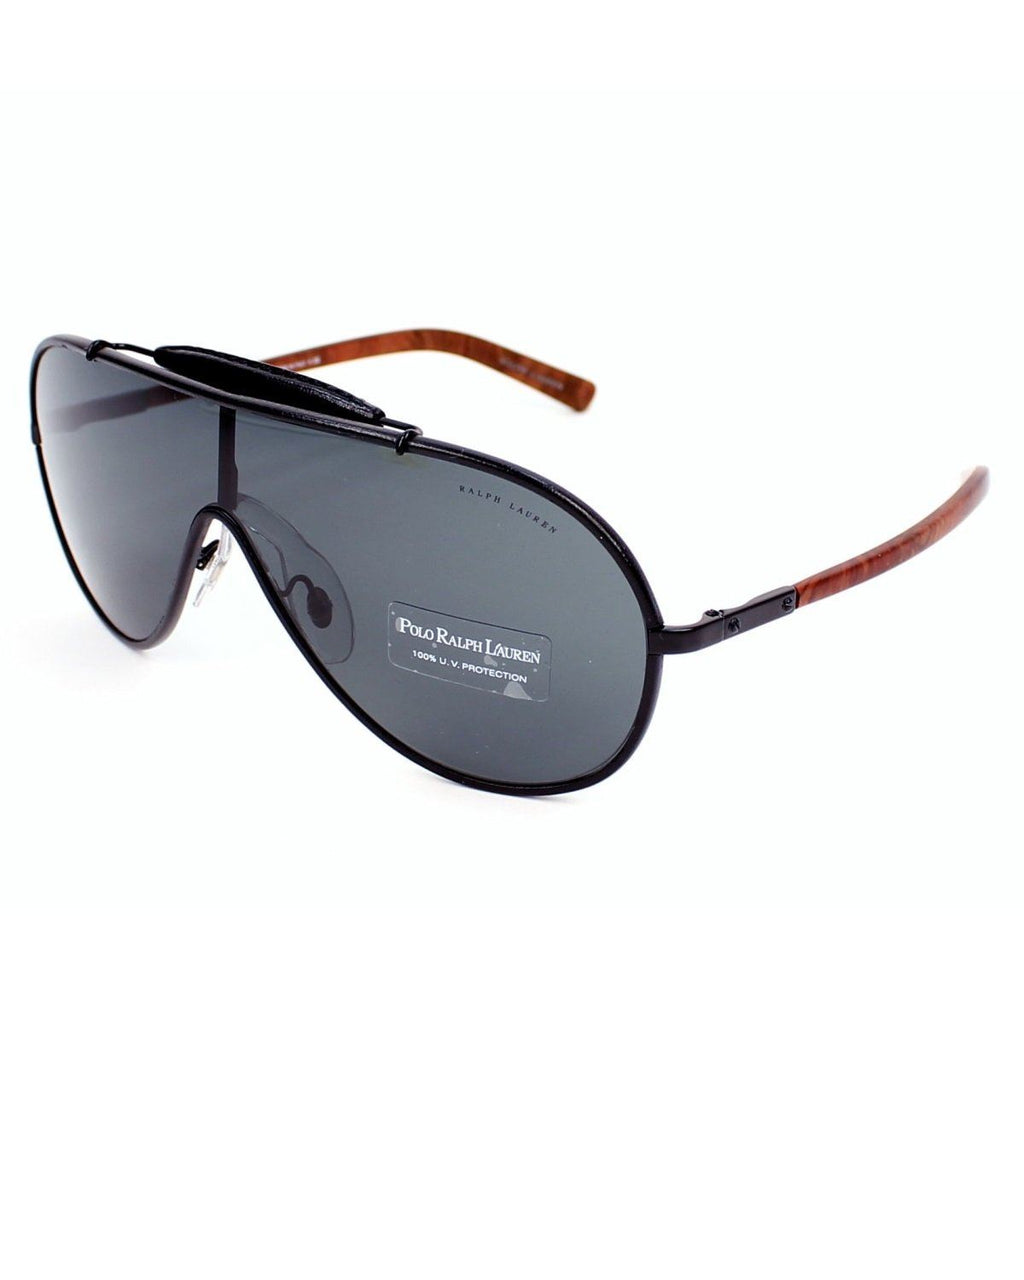 POLO RALPH LAUREN PH3074PQ - 902887 SUNGLASSES